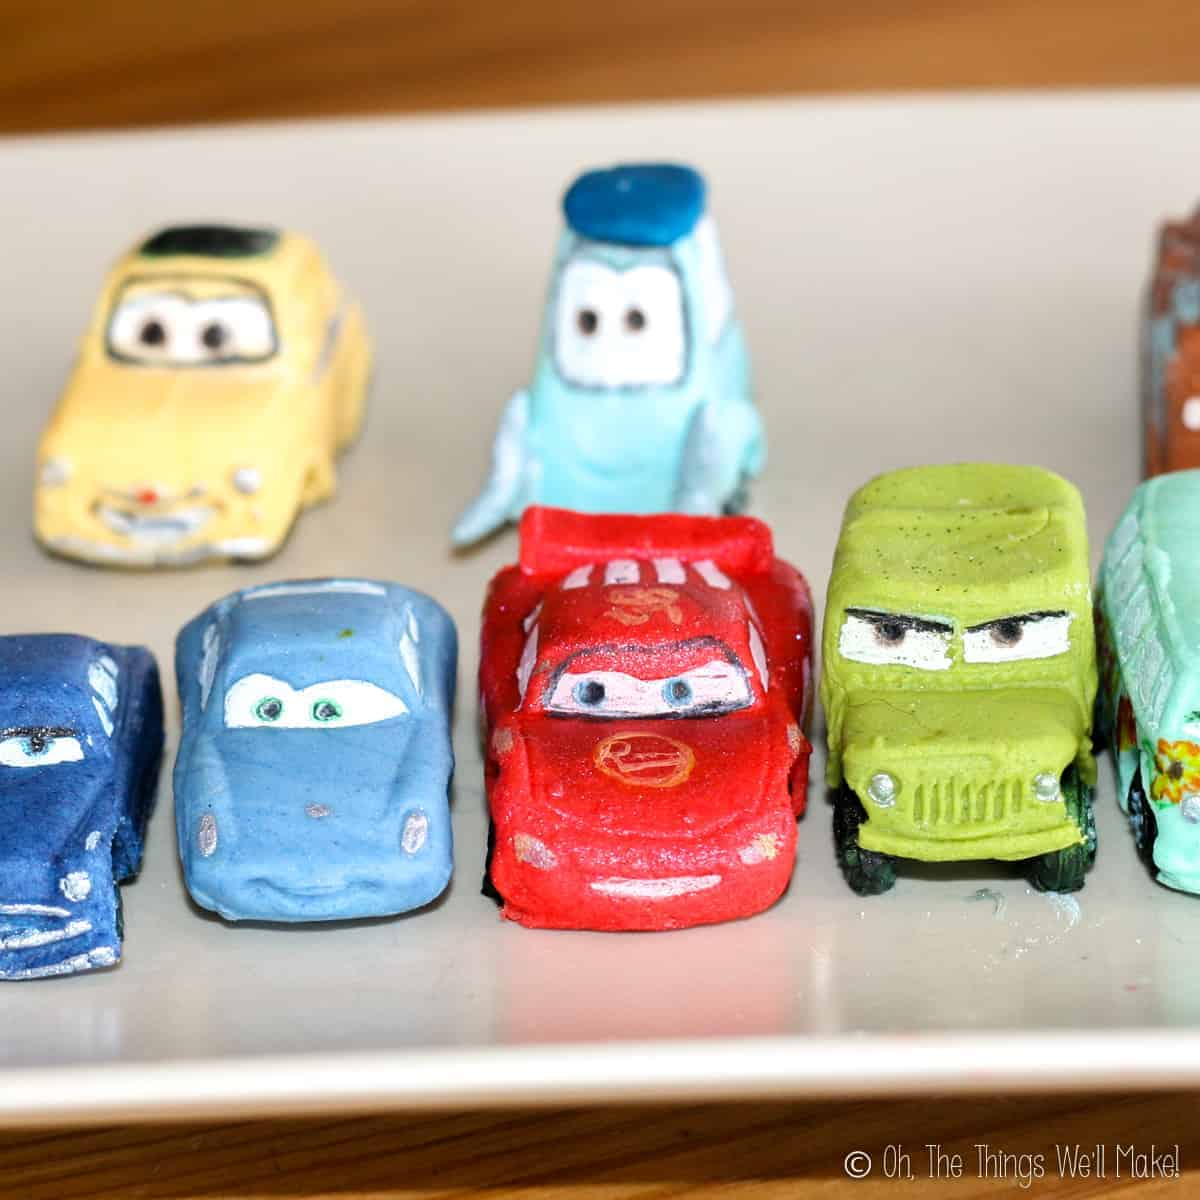 A plate with several fondant cars on it